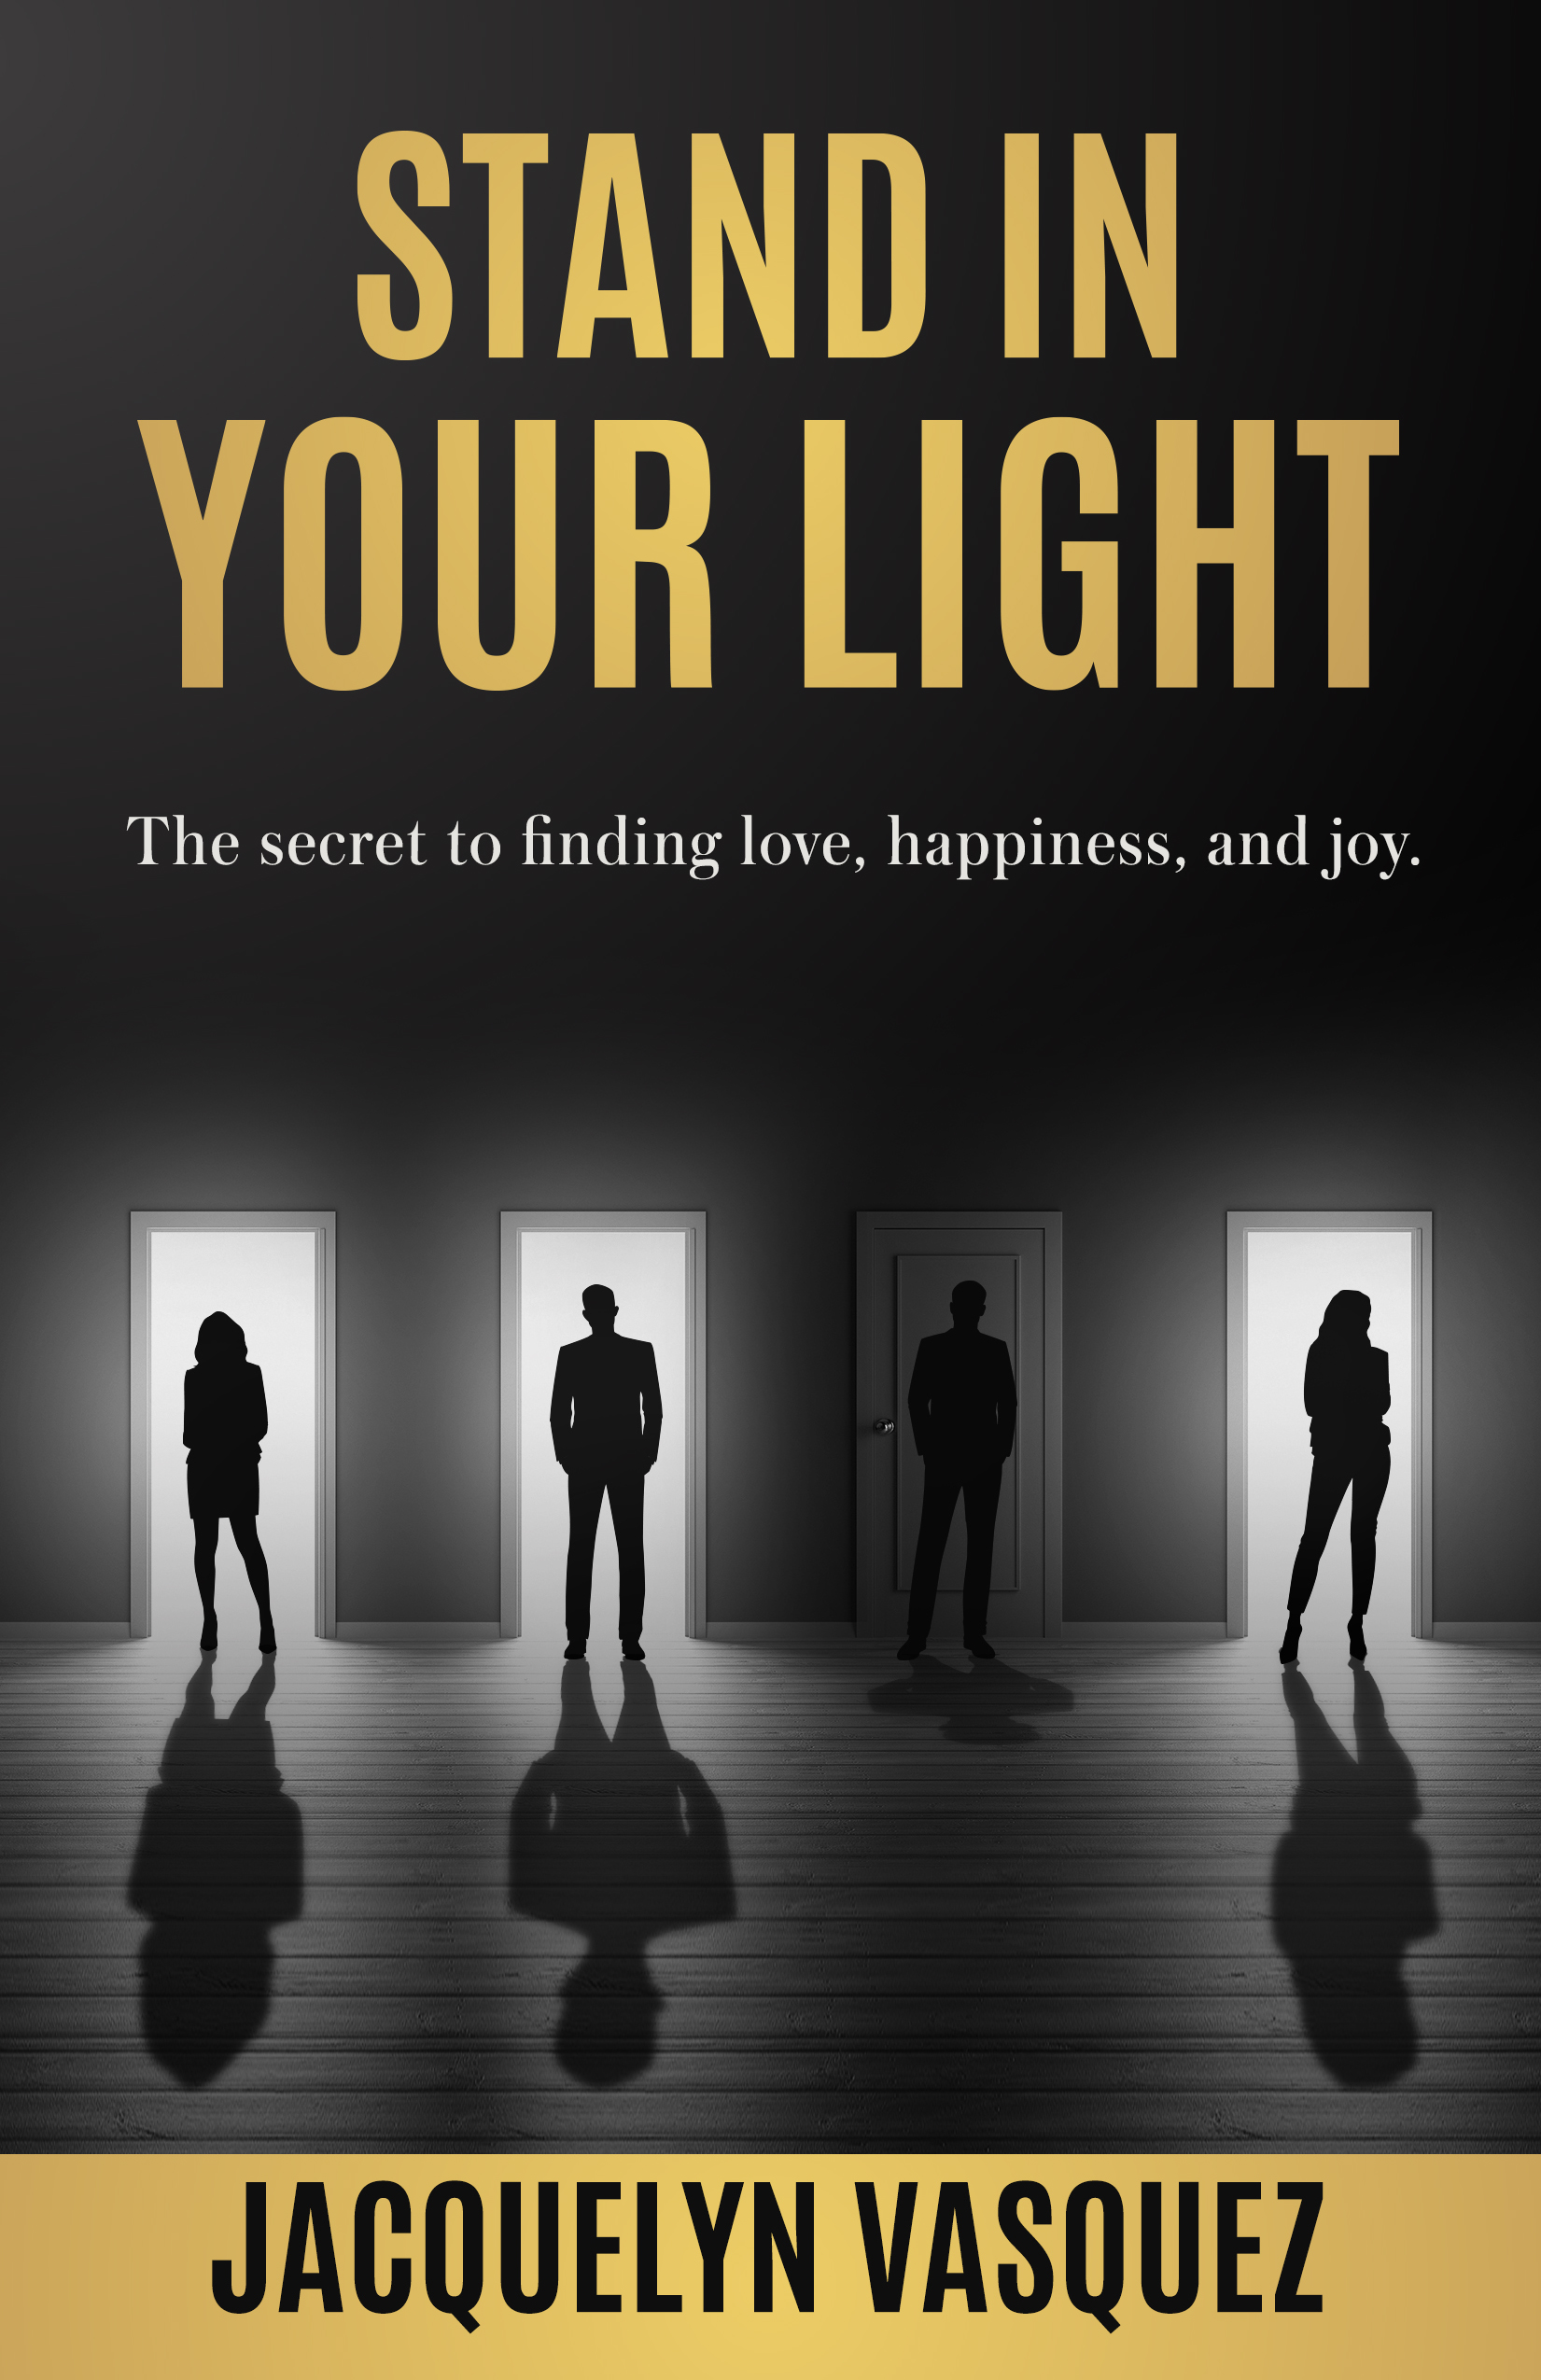 Jacquelyn Vasquez to Release Her First Book 'Stand in Your Light' Based on Incidents from Her Life